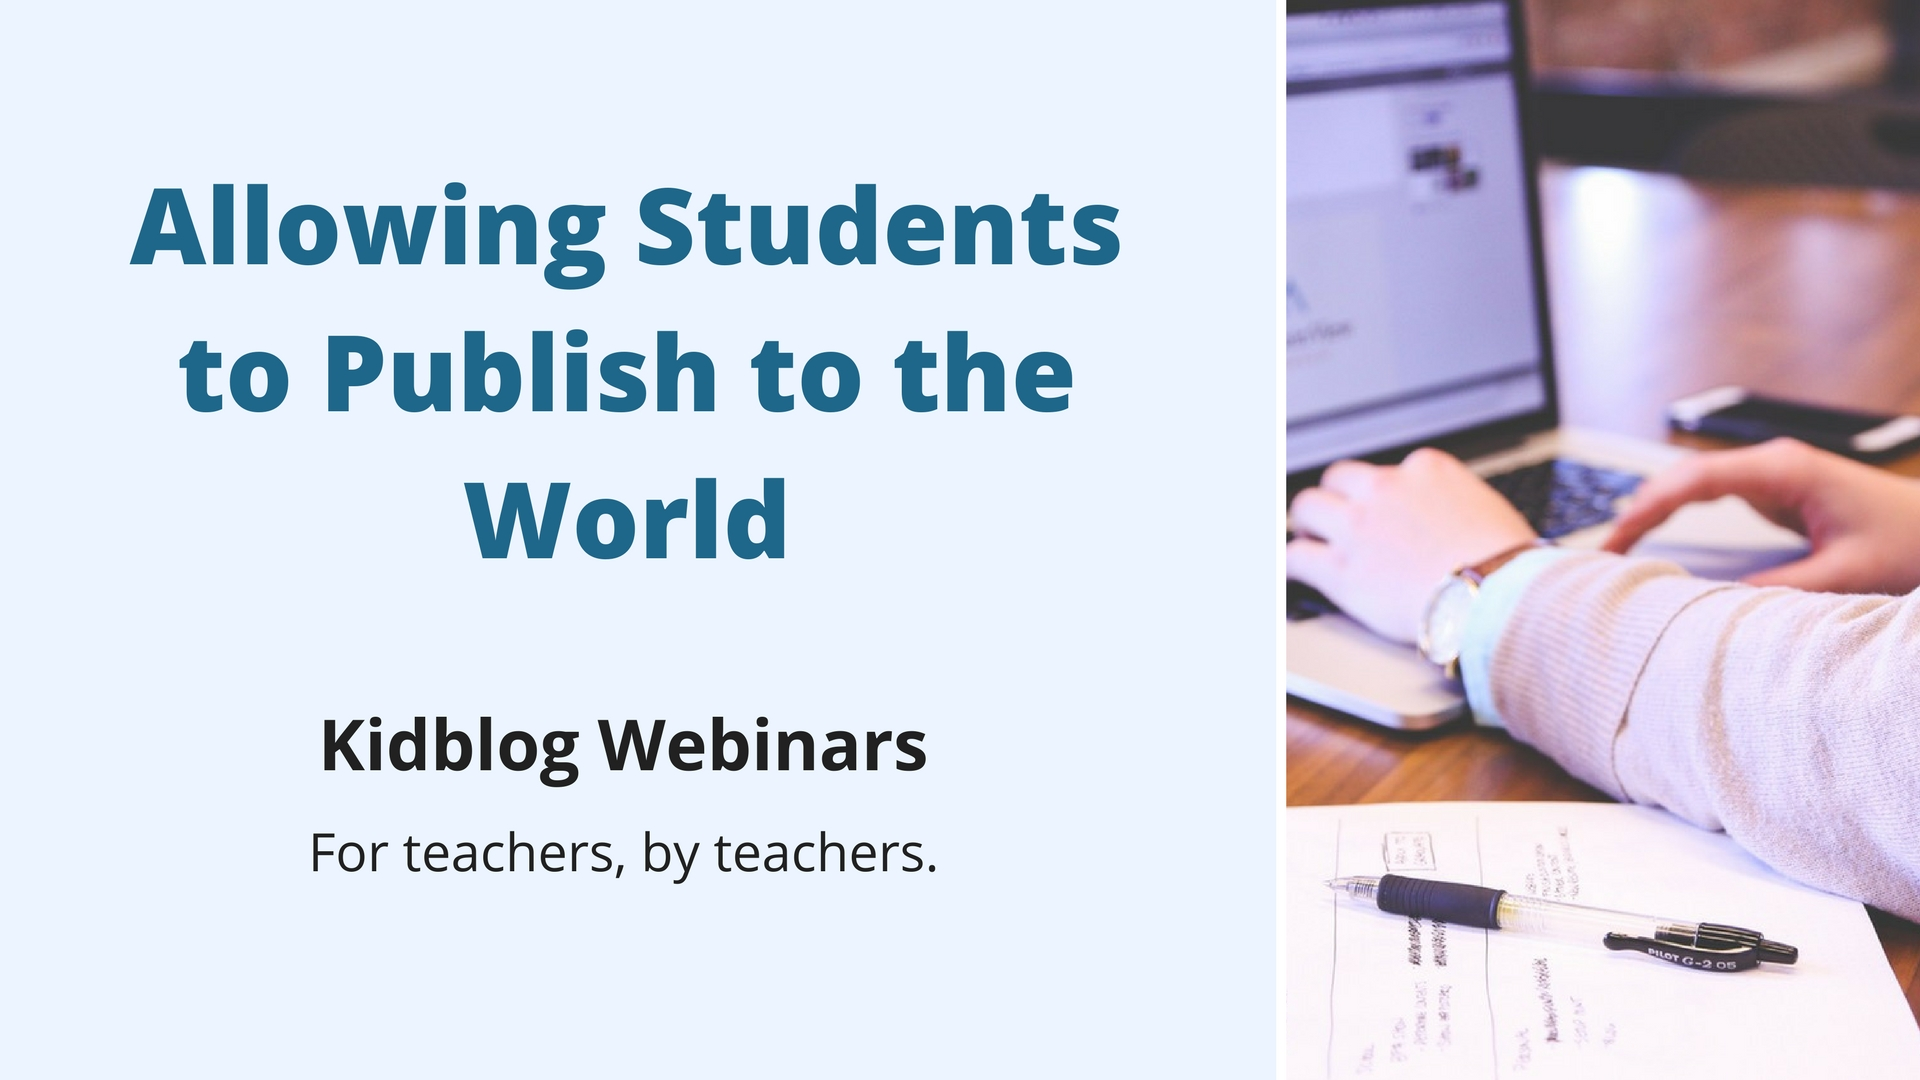 Webinar: Allowing Students to Publish to the World